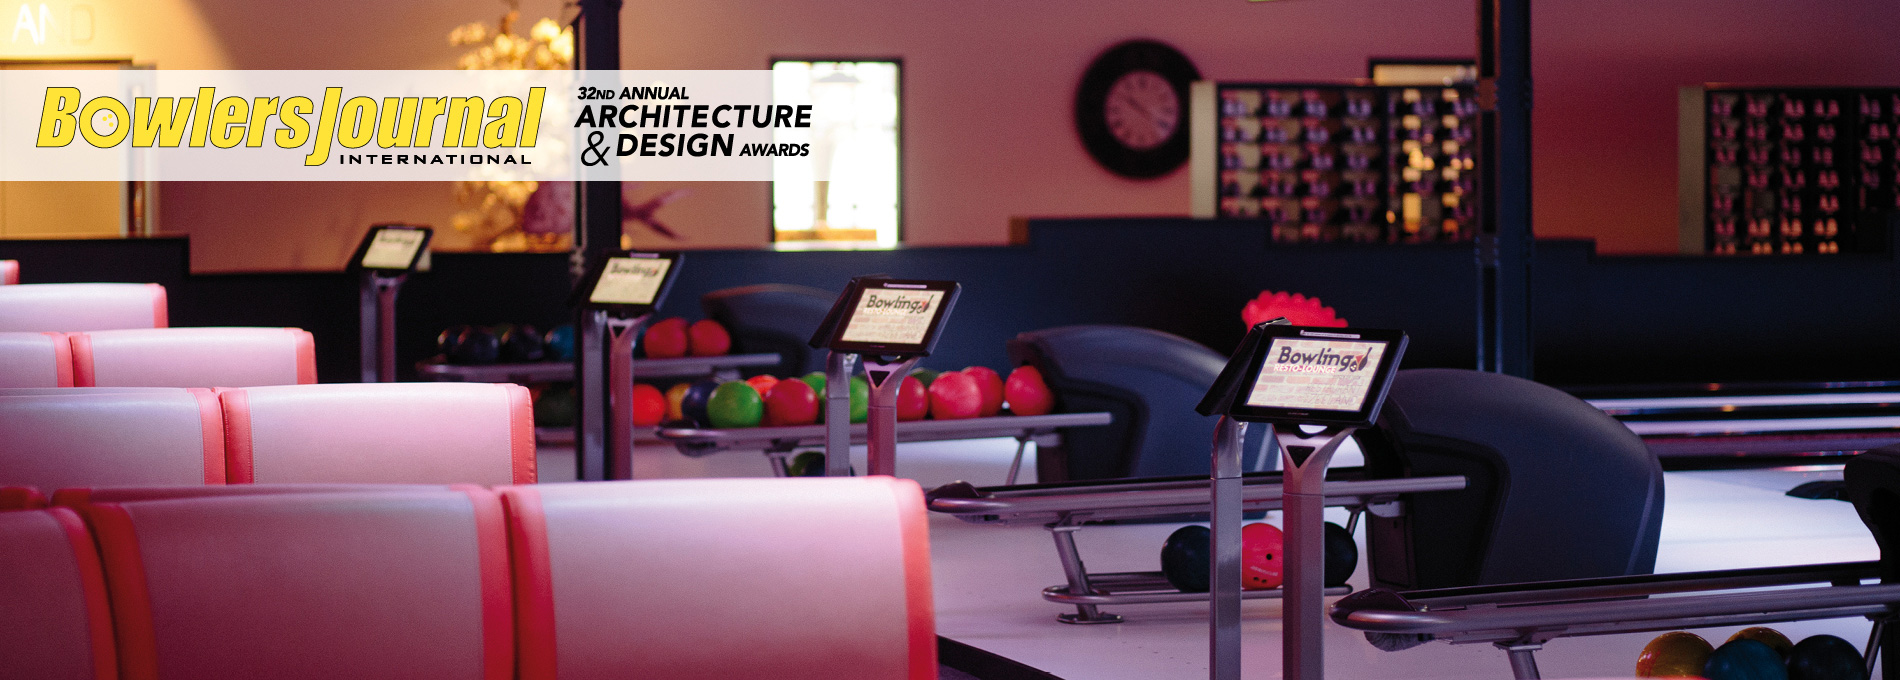 qubicaamf-bowling-32nd-architecture-and-design-awords-banner-BOWLING-RESTO-LOUNGE.jpg